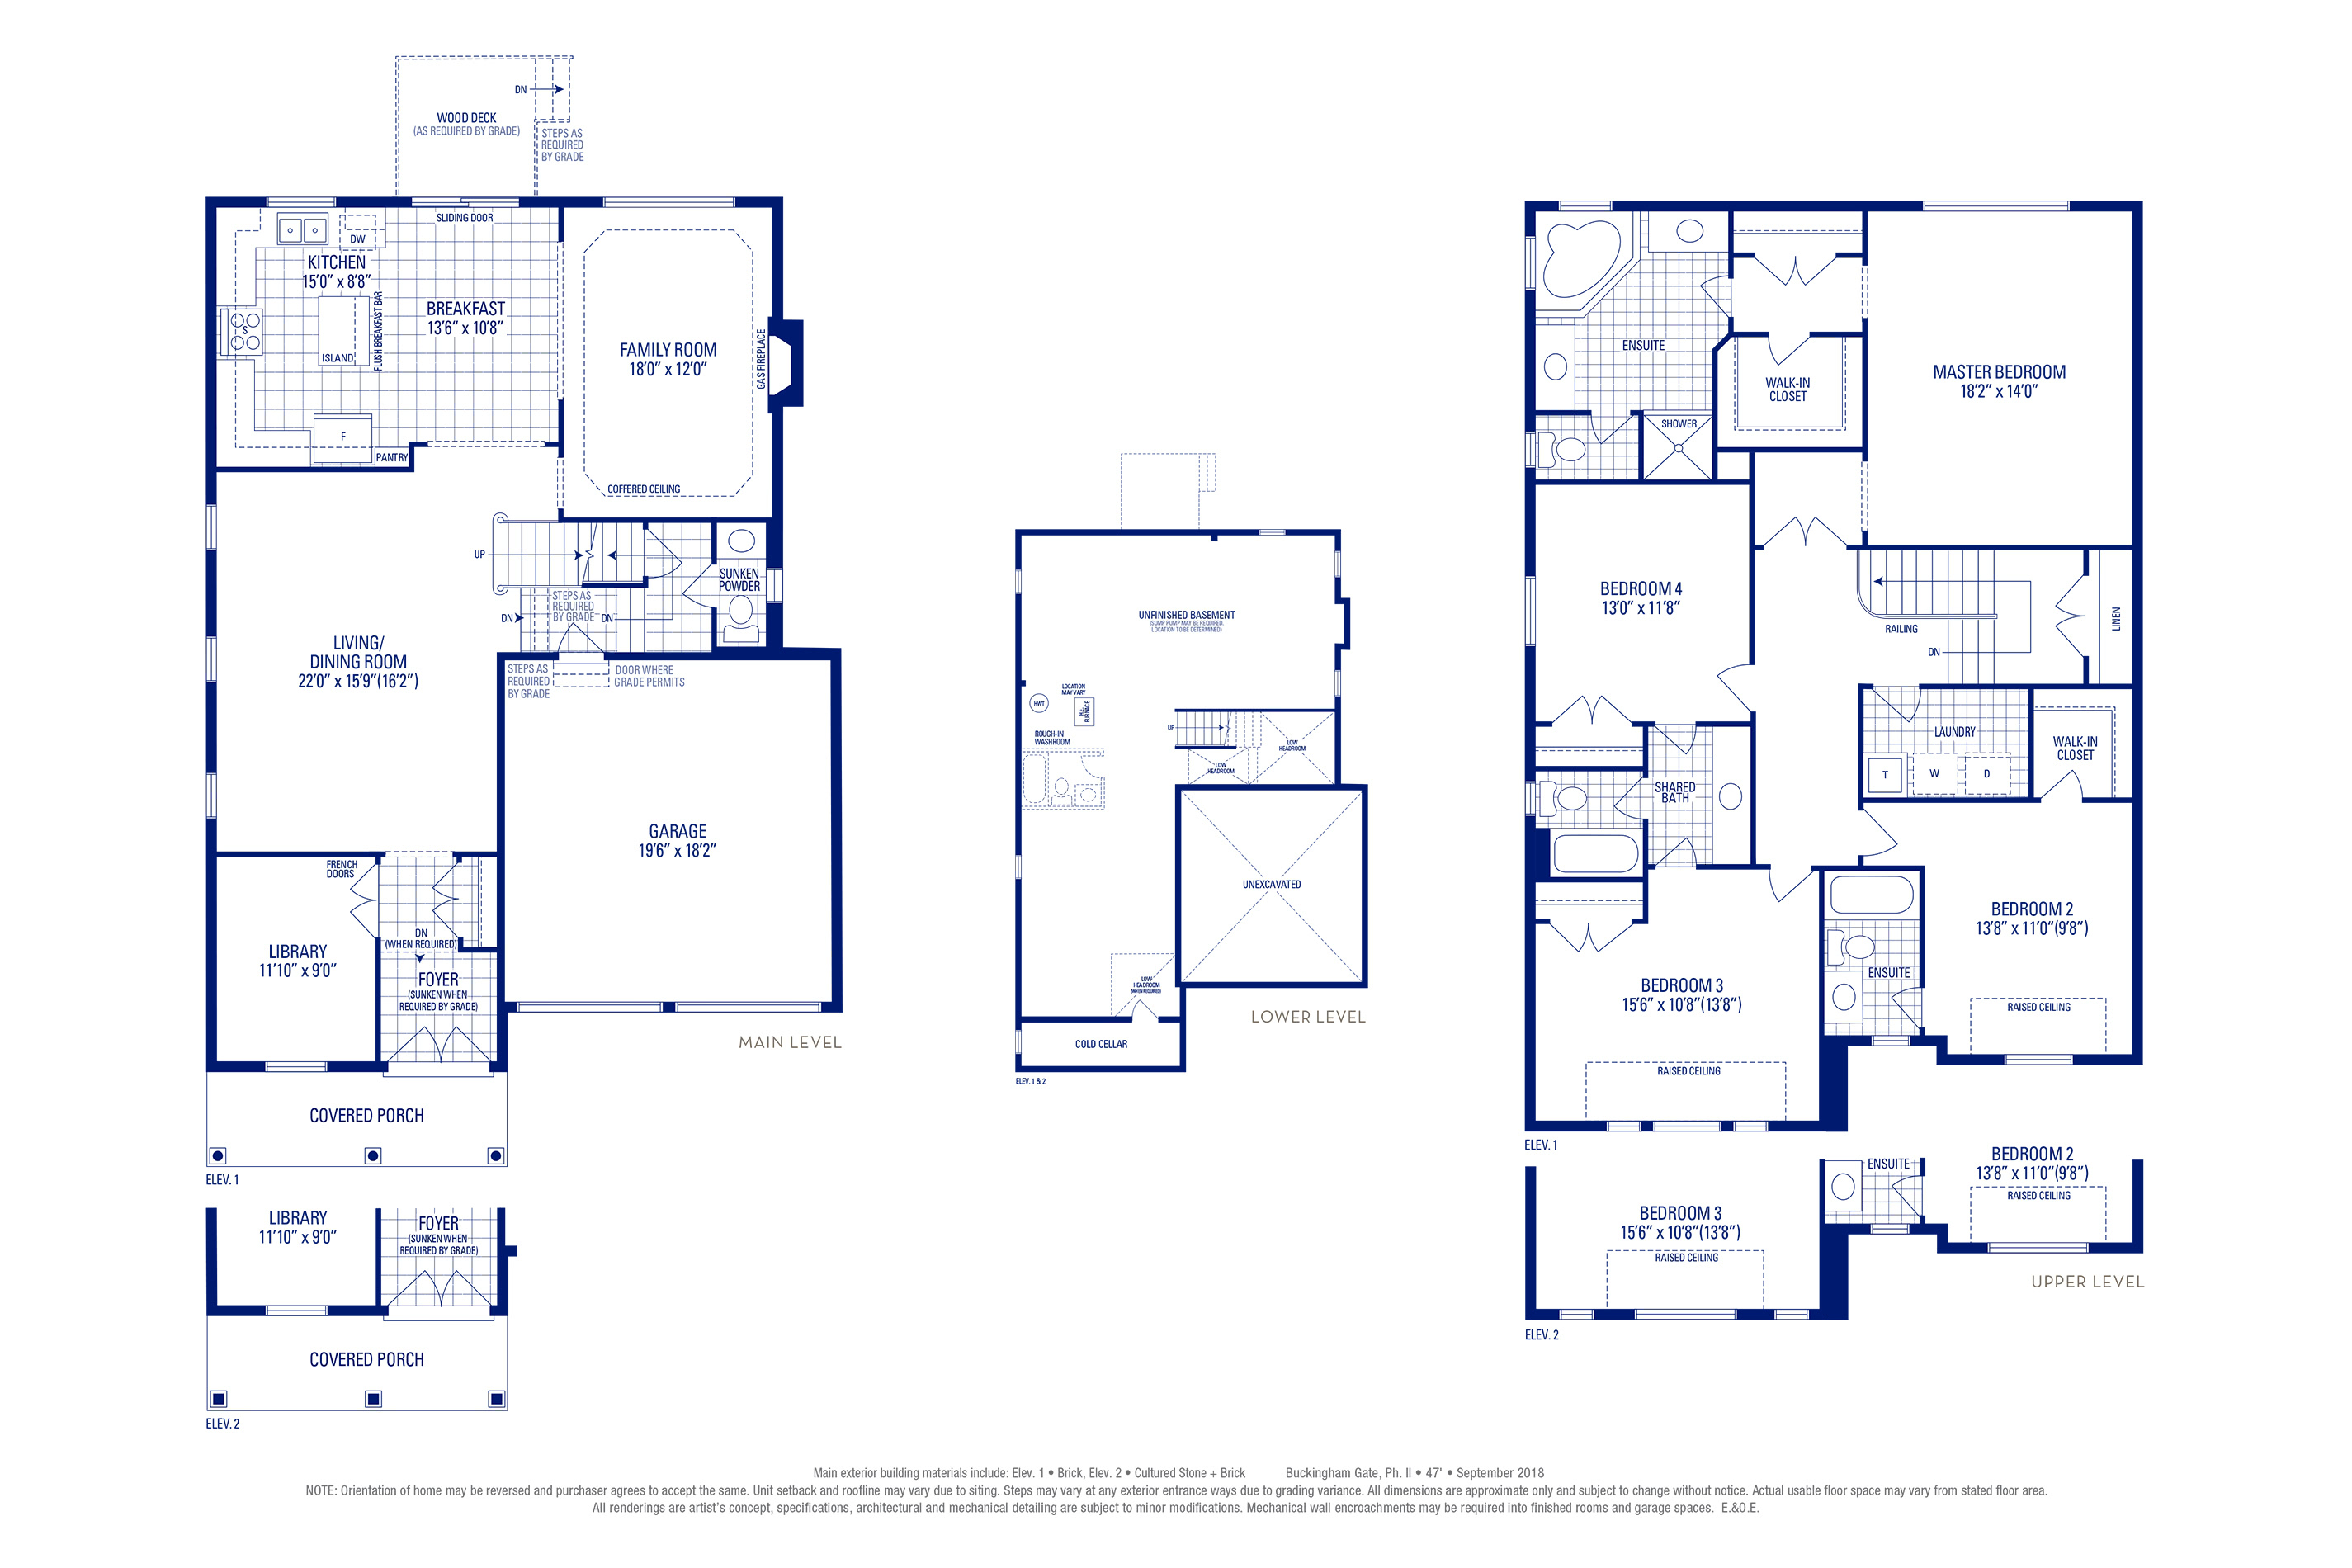 Stafford 03 Elev. 2 Floorplan